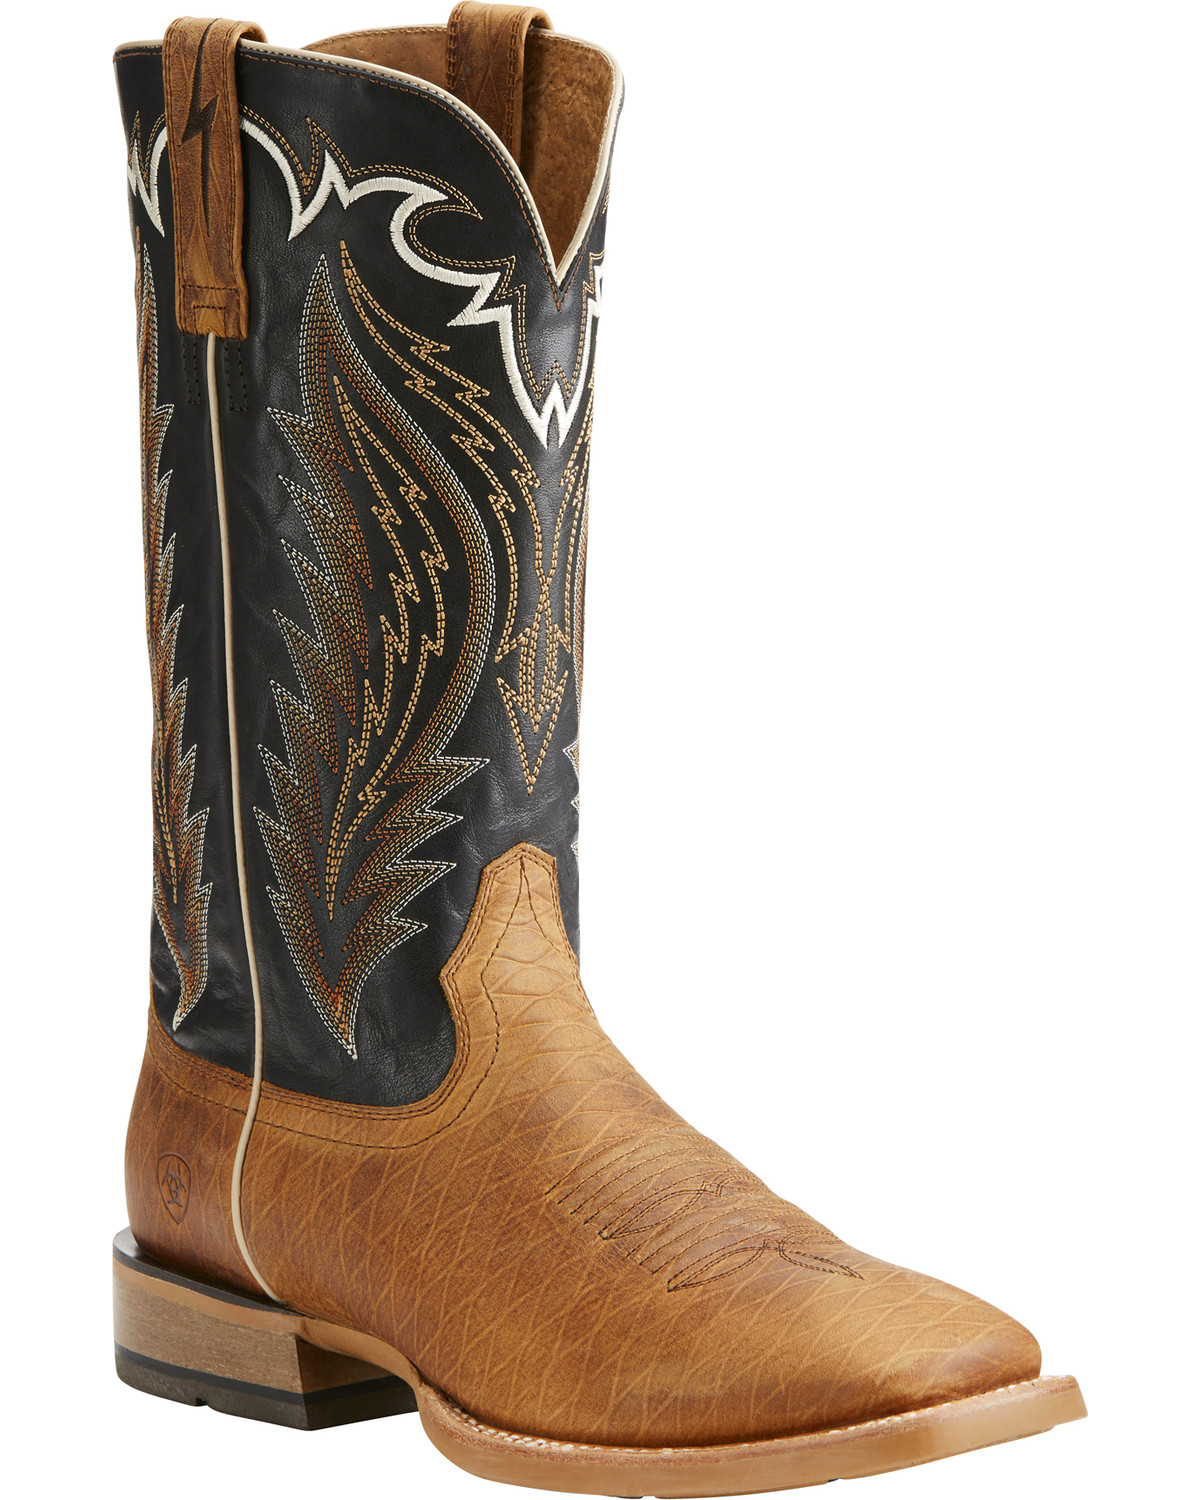 Ariat Men39s Top Hand Square Toe Western Boots Boot Barn